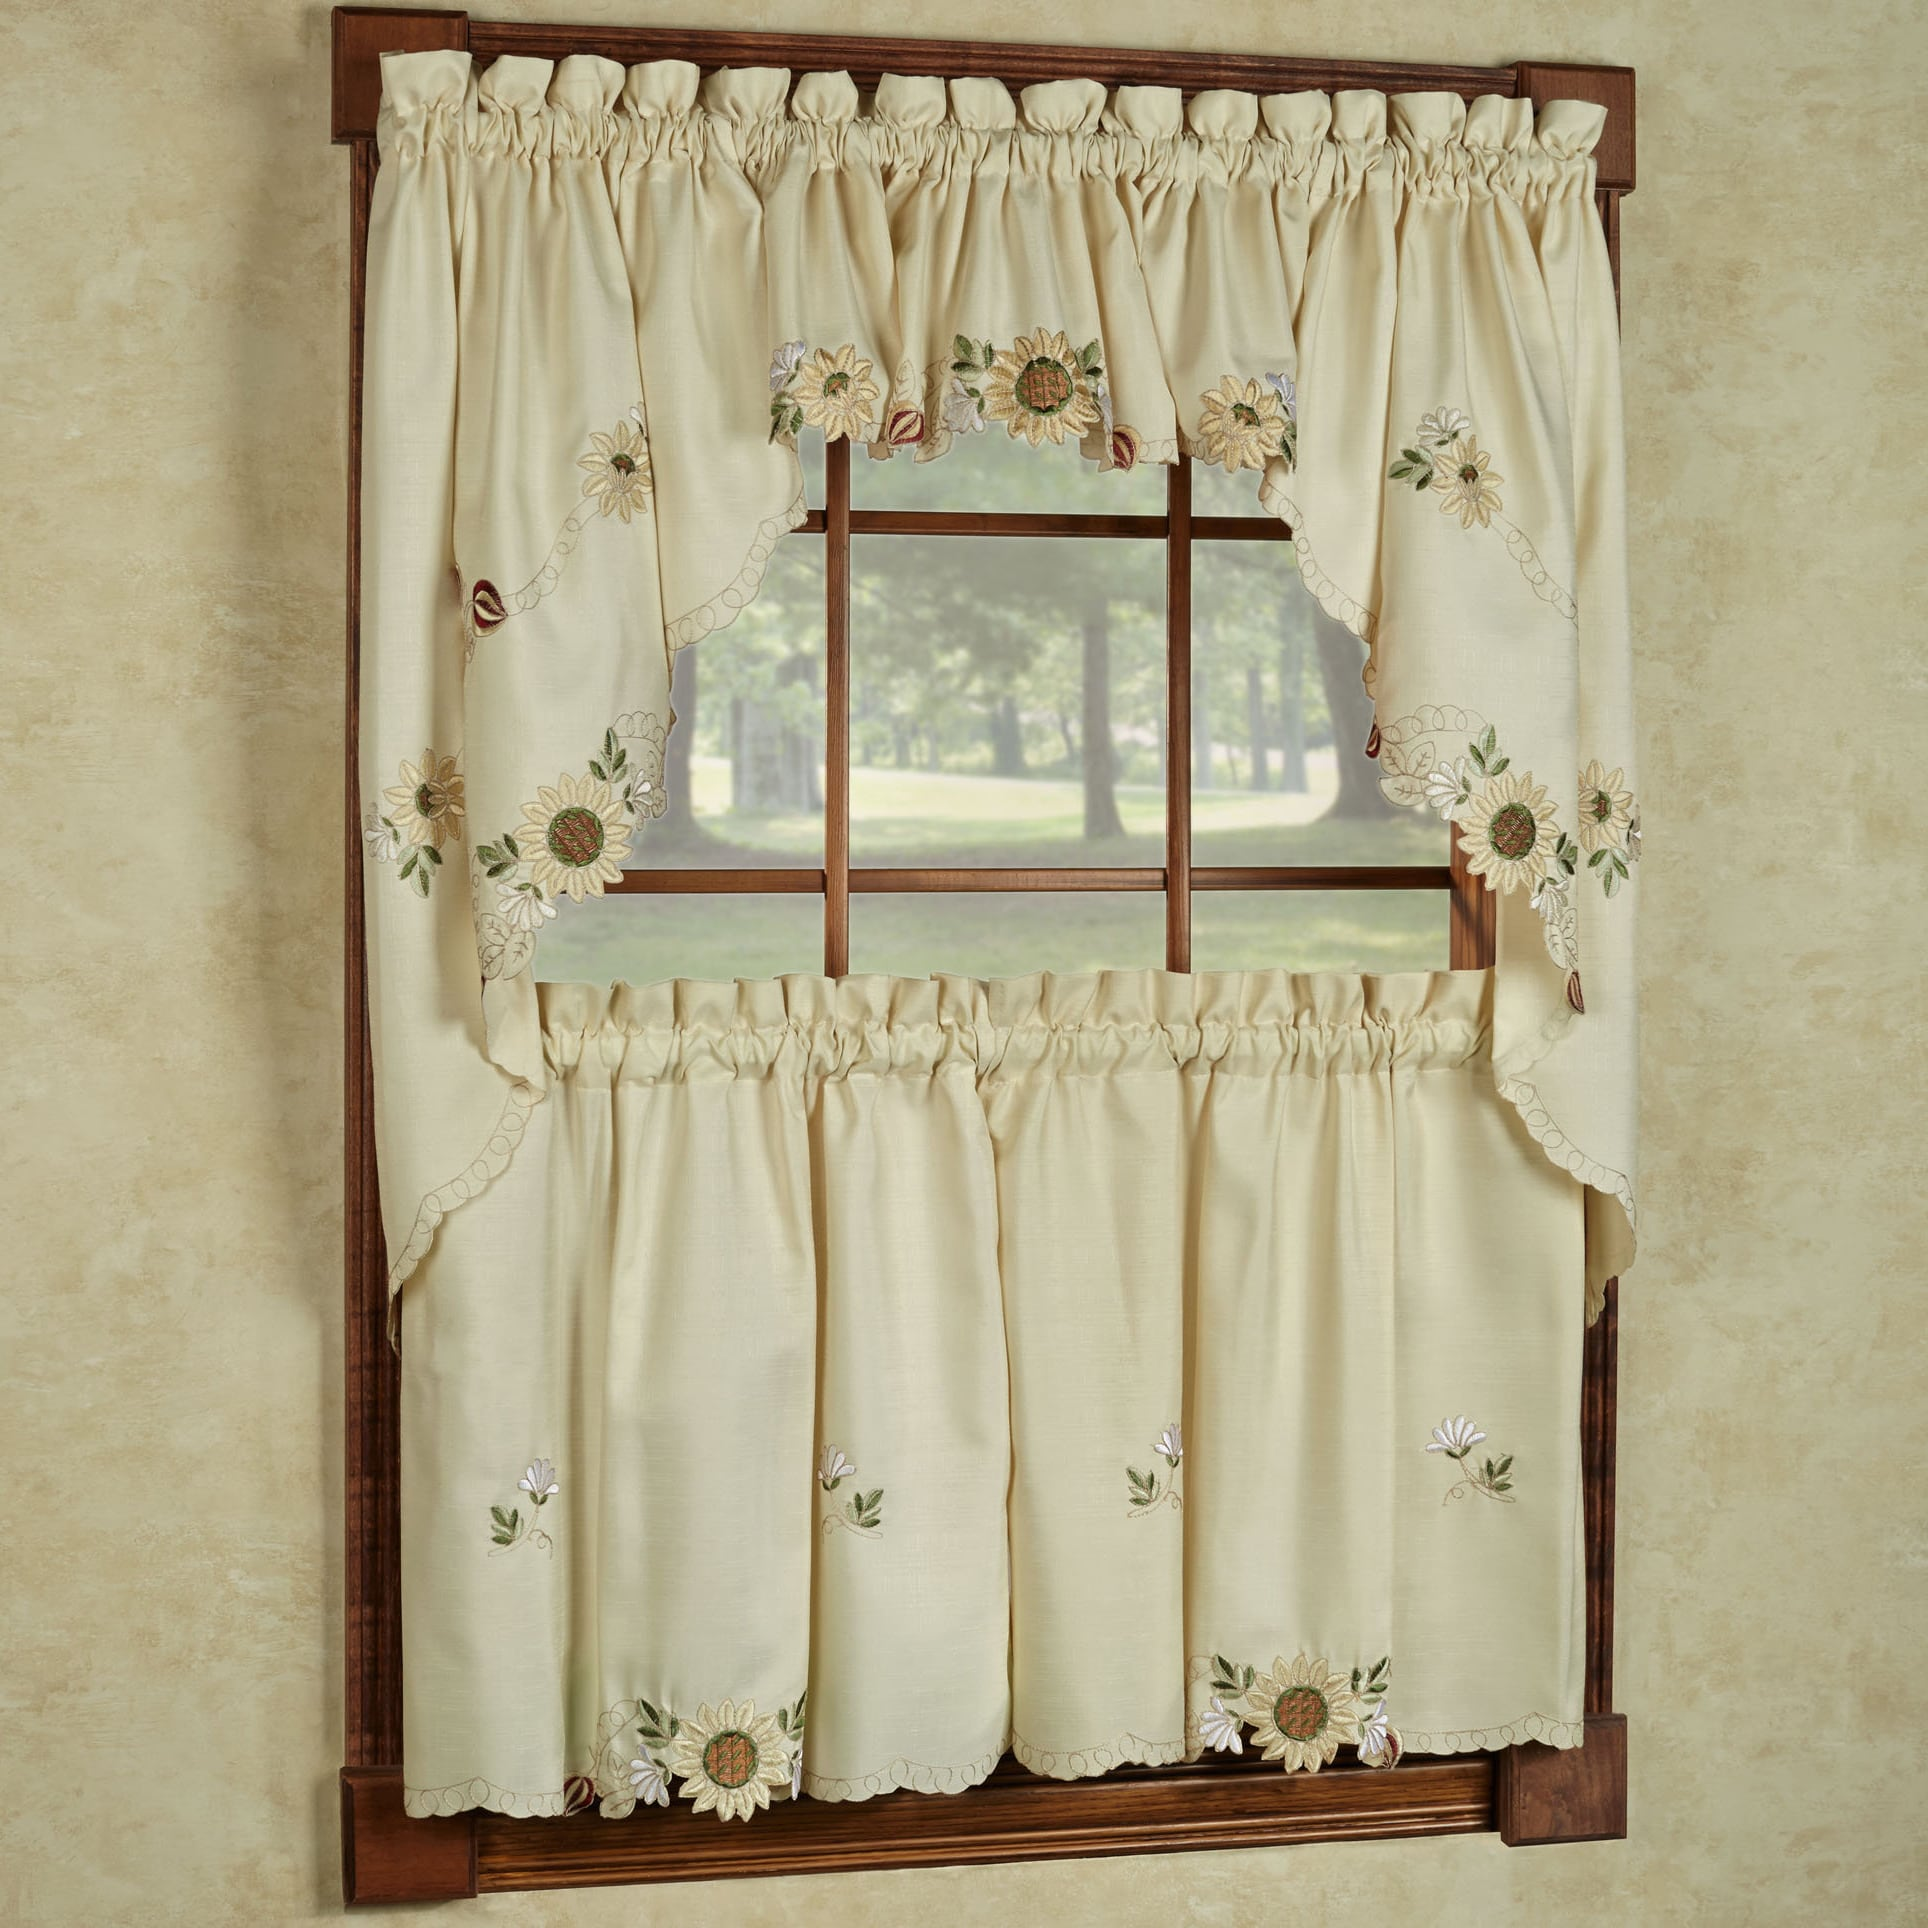 Embroidered Sunflower Kitchen Curtains Separates- Tier, S...